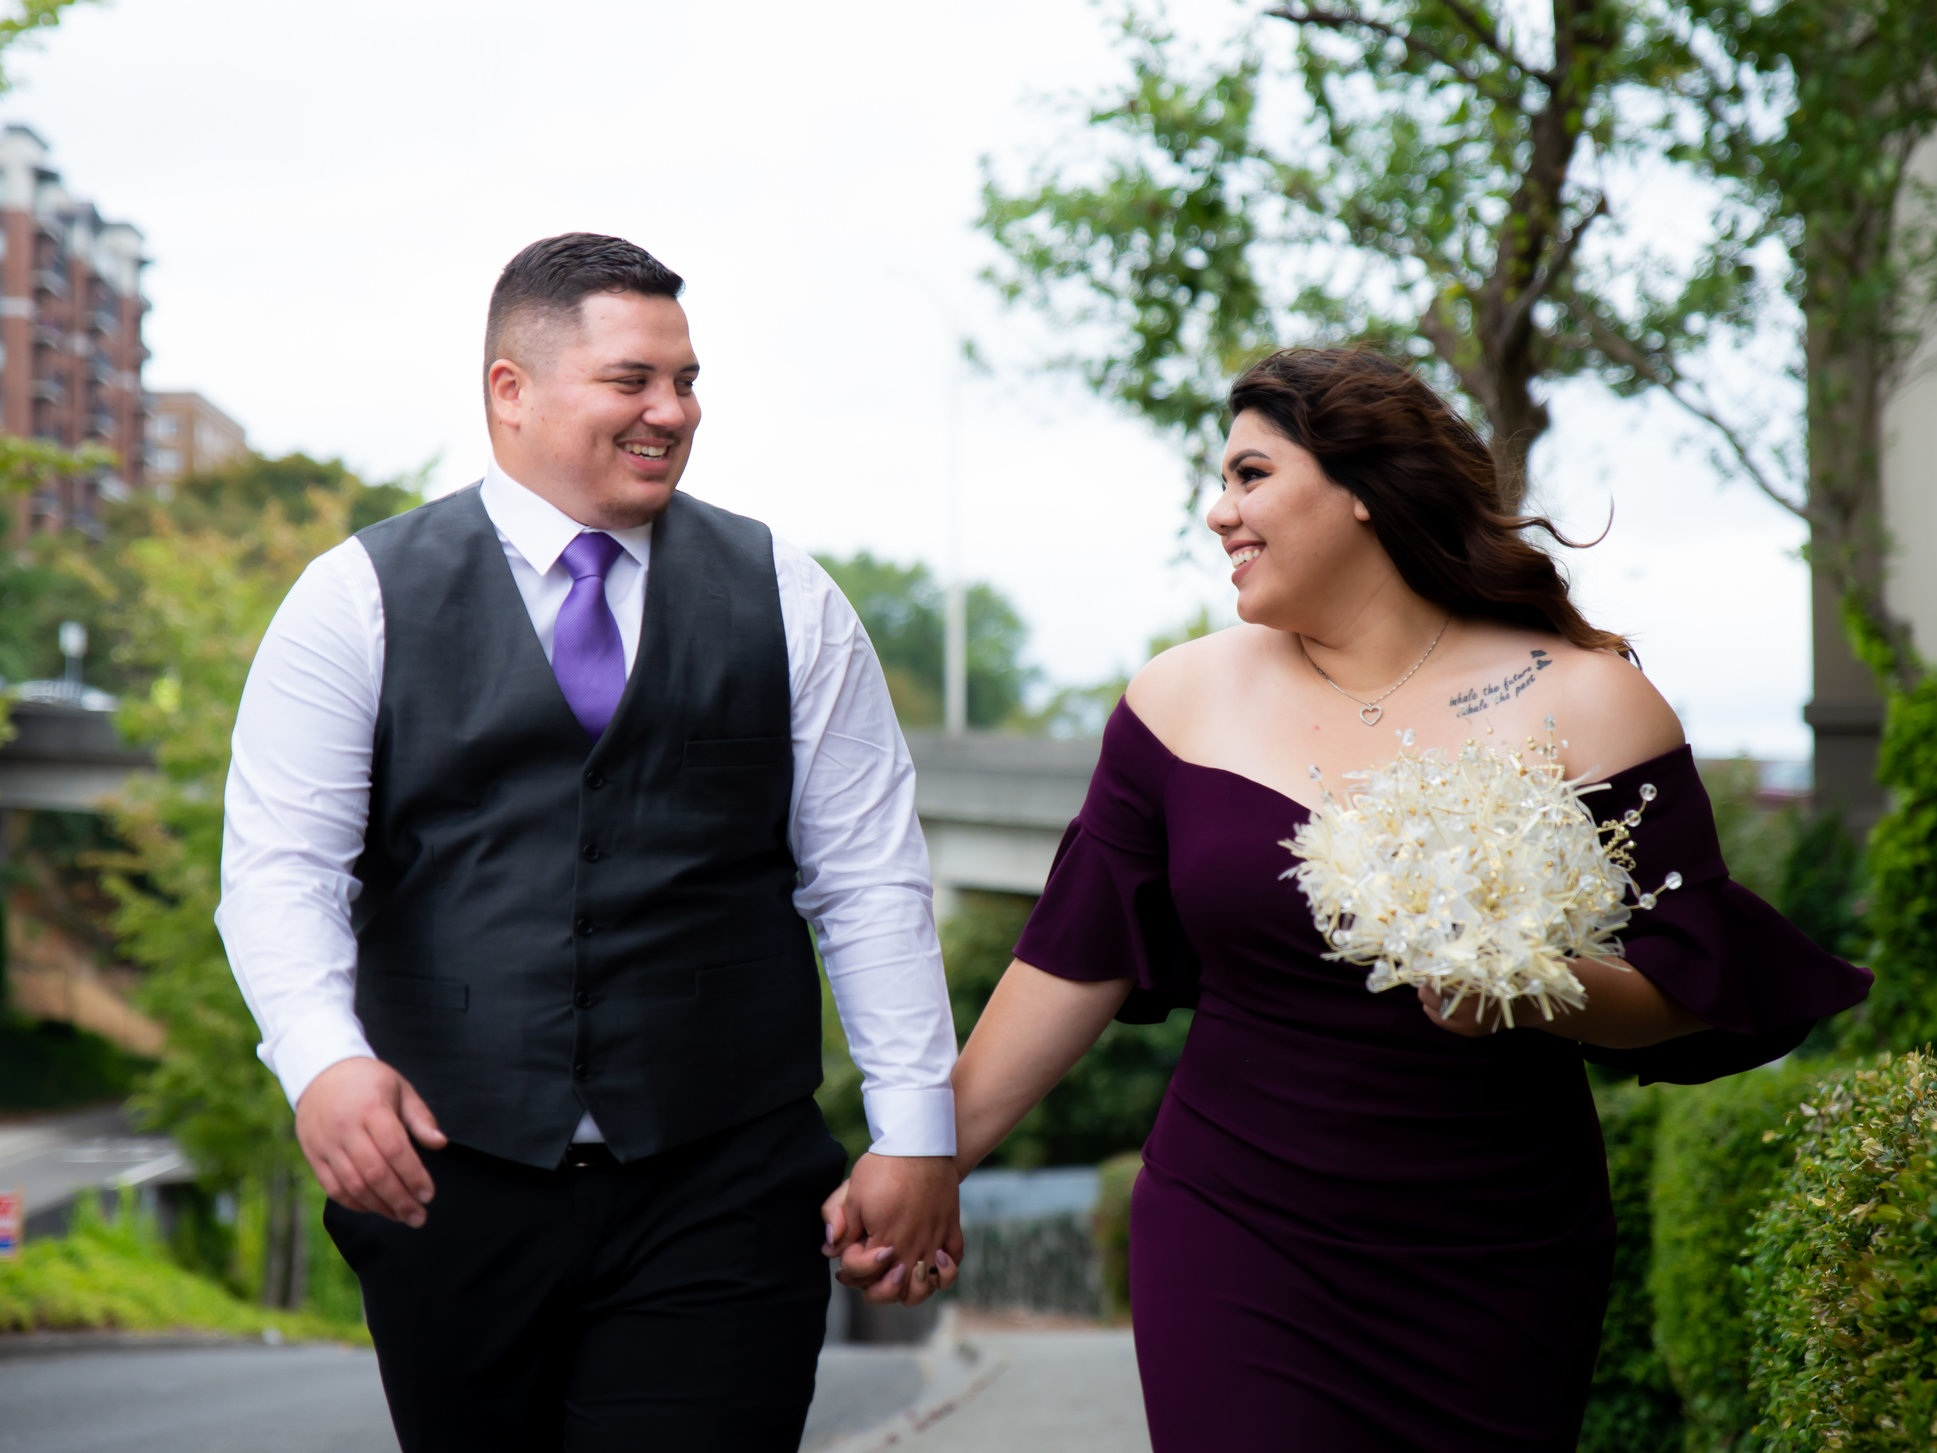 Our mission - We are more than just a wedding chapel. Our vision is to empower couples to challenge the assumptions of a traditional wedding and to marry their favorite person in a small yet meaningful & beautiful way.